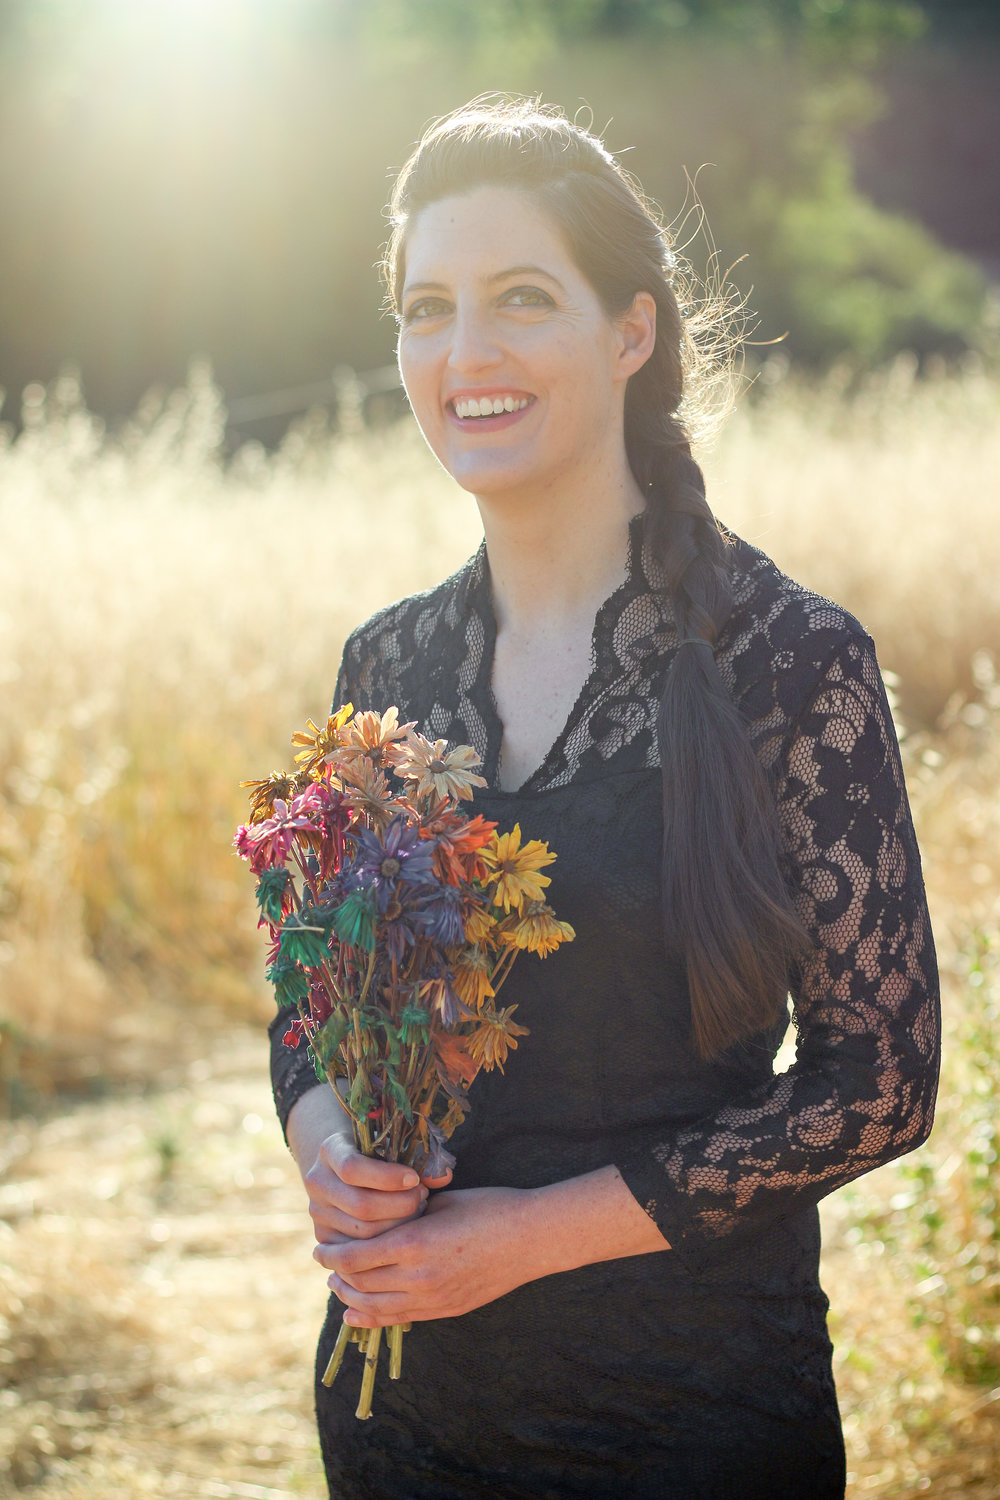 alexandra-rice-photography-quail-hollow-ranch-gothic-photoshoot-meadow-dead-flowers-sunset.jpg